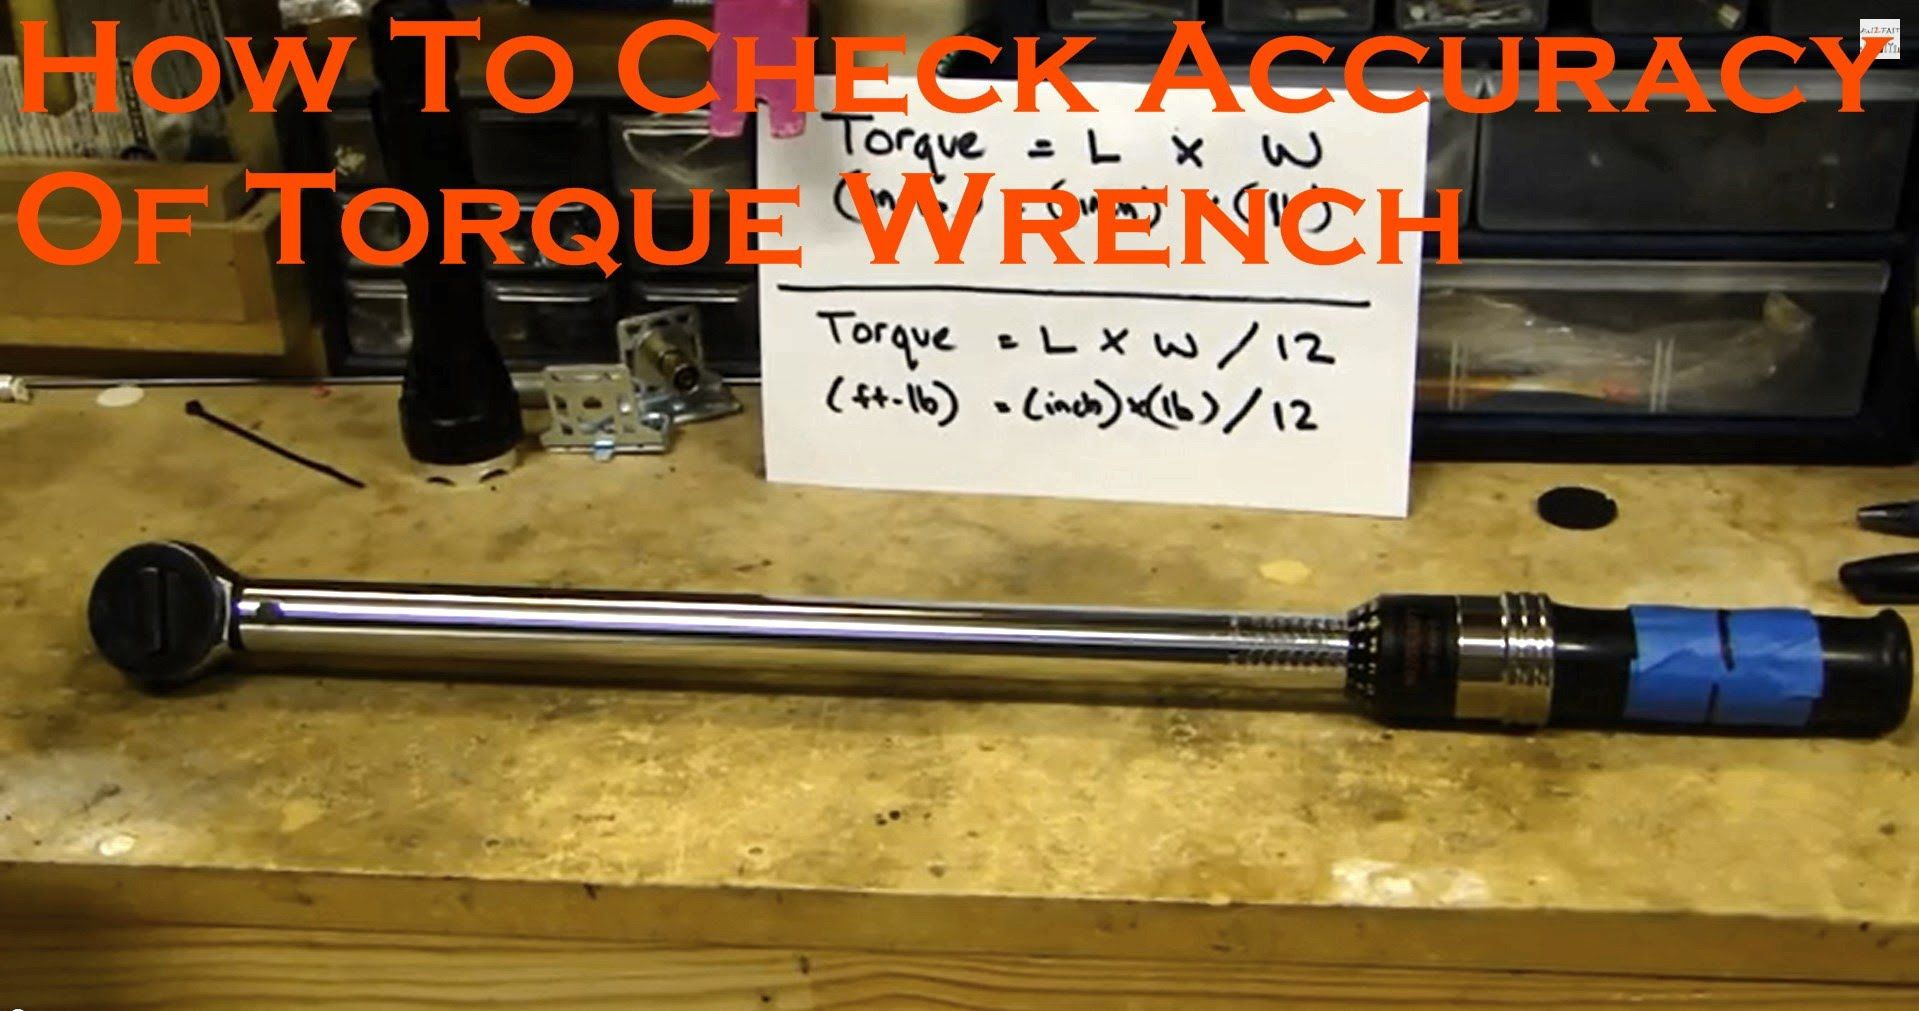 How to Check Calibration Accuracy of Torque Wrench (Video